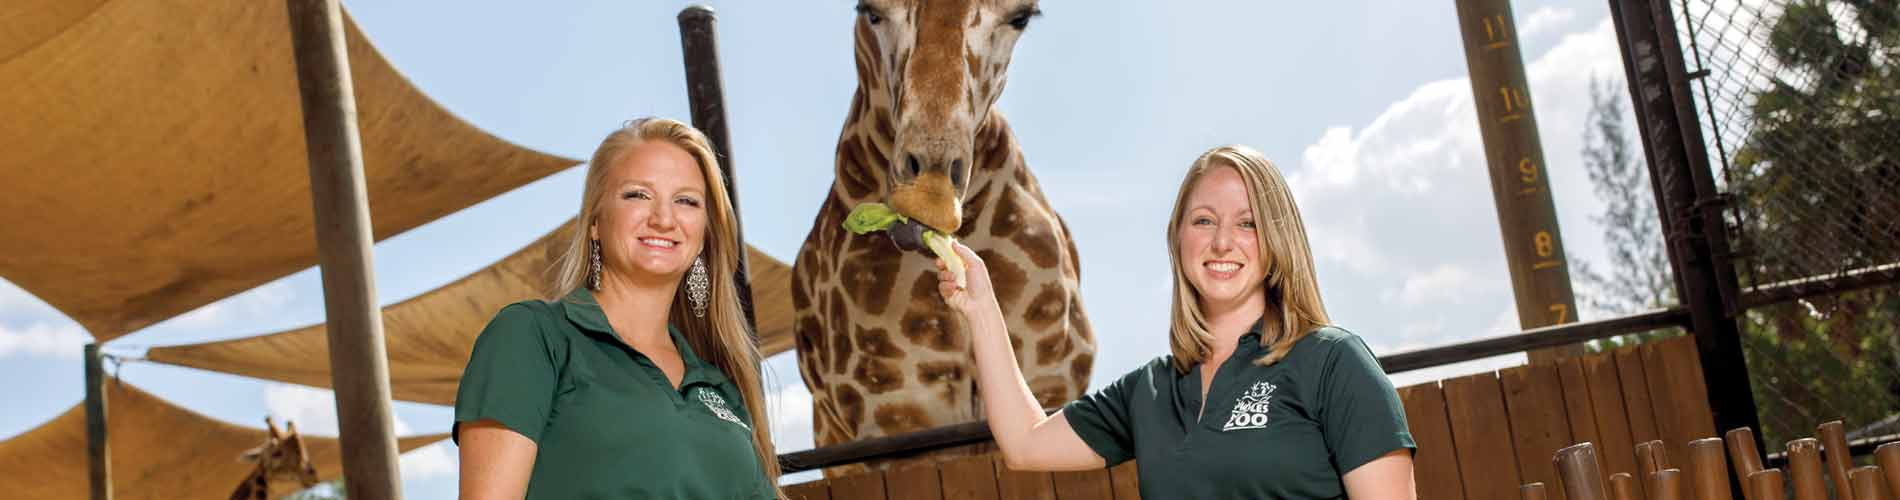 Alumna helps build education program at Naples Zoo